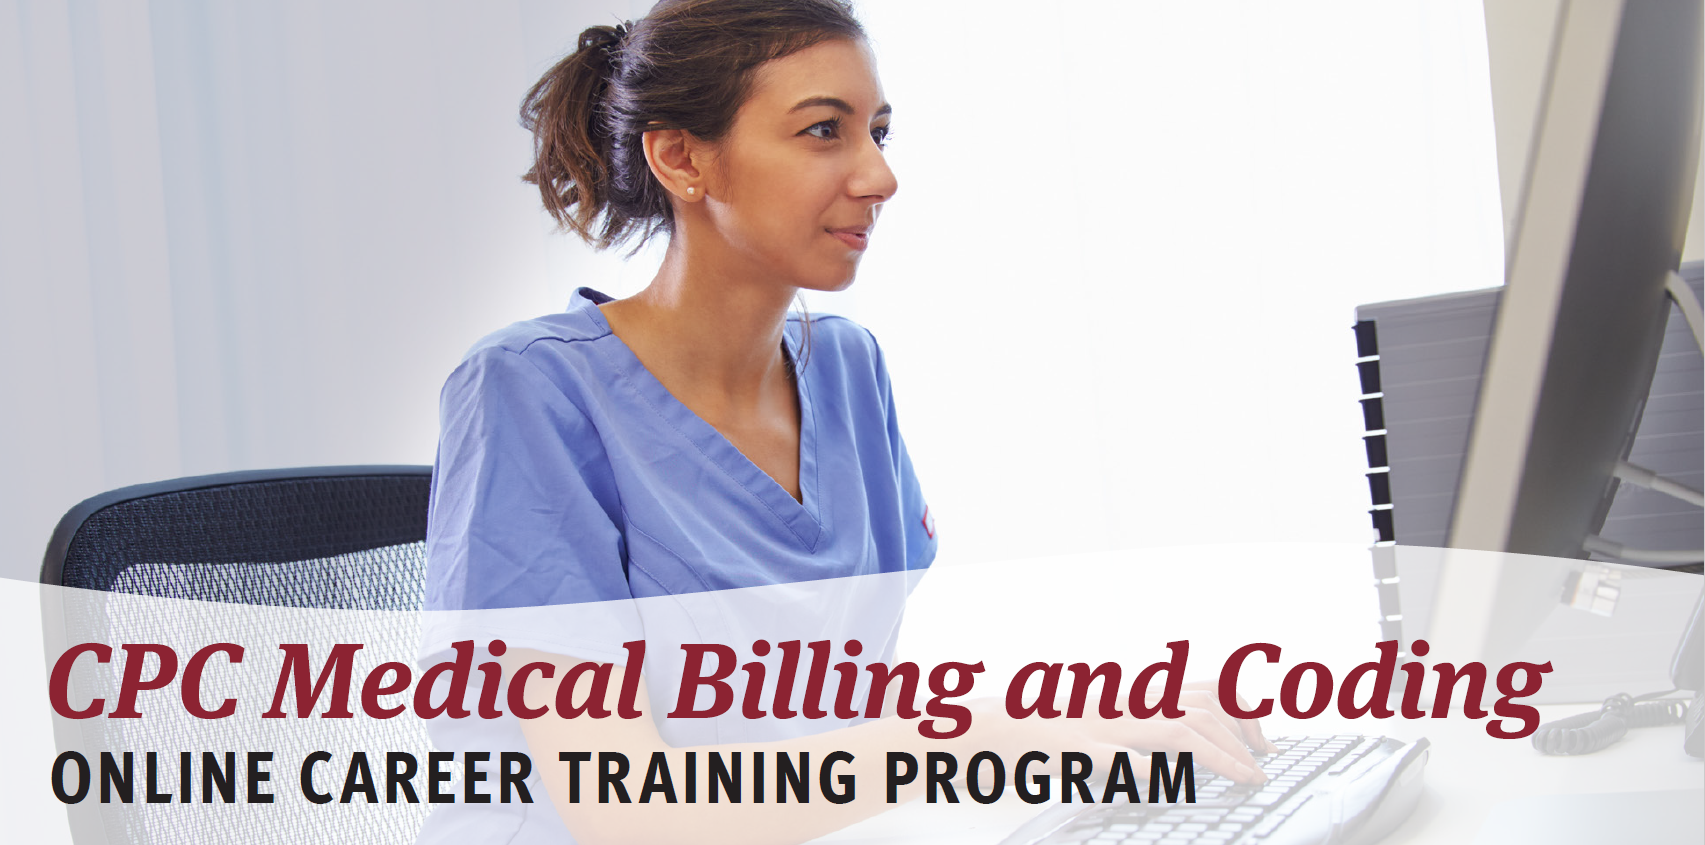 CPC Medical Billing and Coding Online Career Training Program